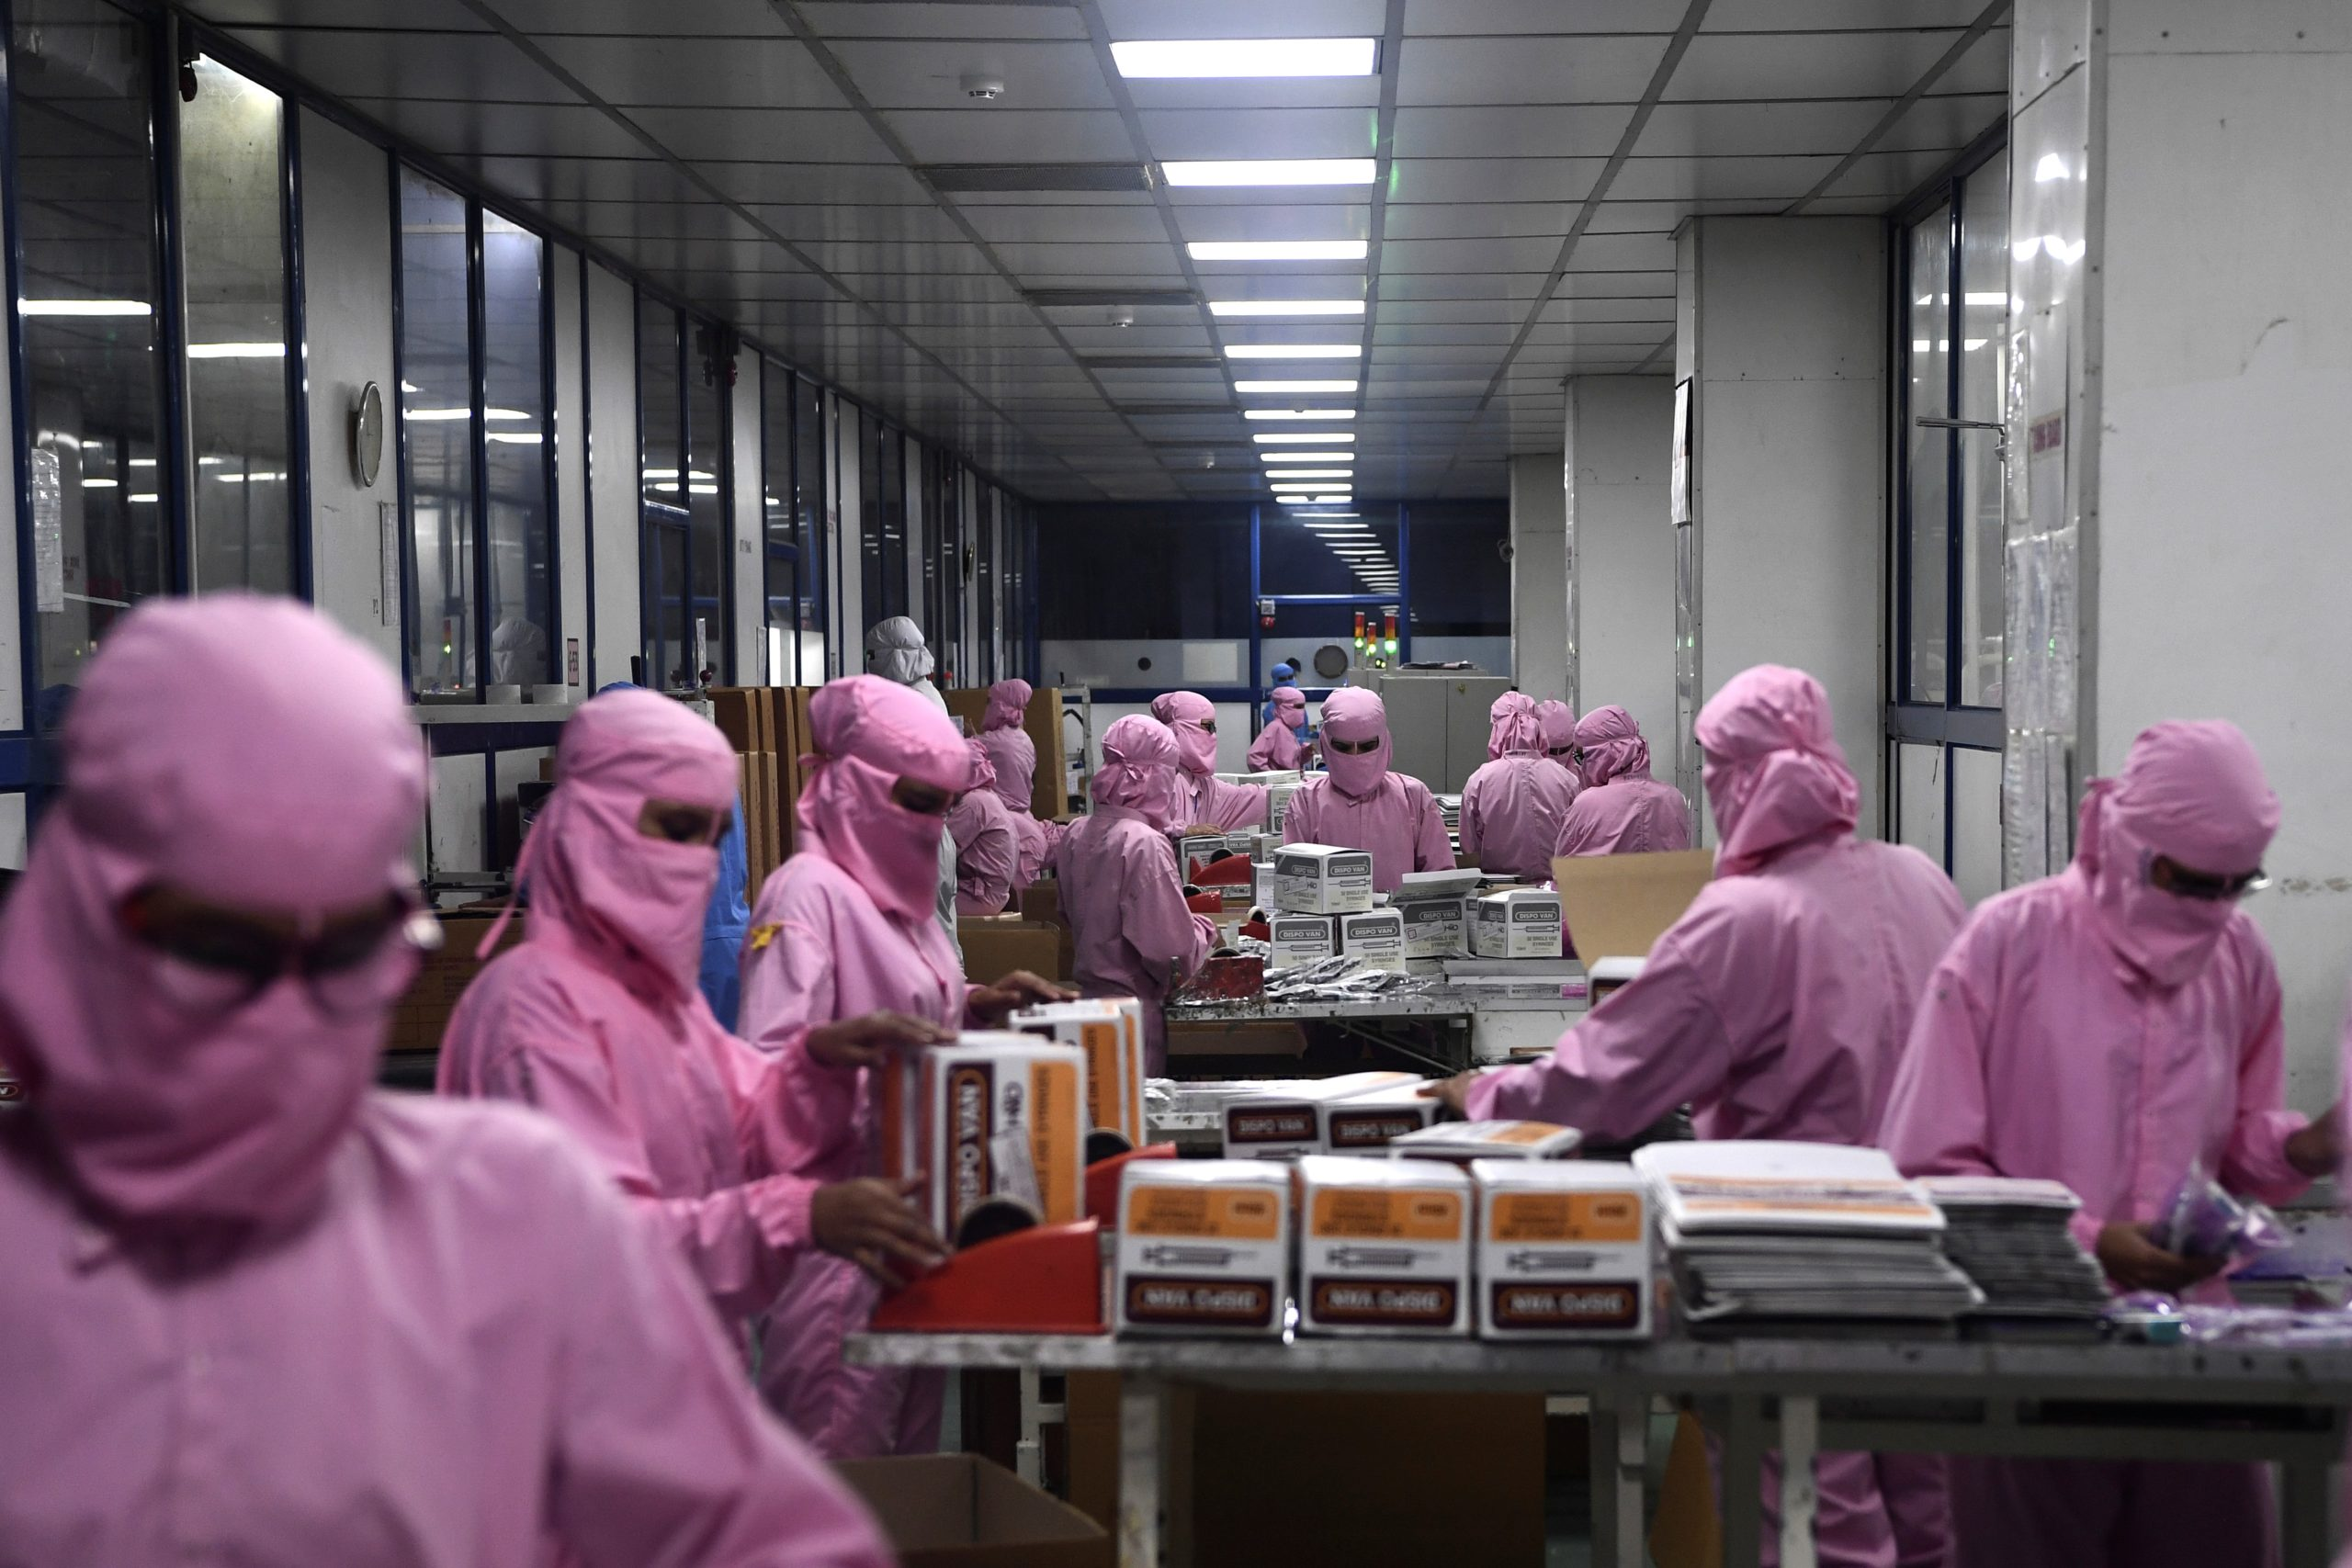 India's biggest syringe manufacturer is ramping up its production to churn out a billion units, anticipating a surge in demand as the global race to find a COVID-19 coronavirus vaccine heats up. (Photo by SAJJAD HUSSAIN / AFP) (Photo by SAJJAD HUSSAIN/AFP via Getty Images)